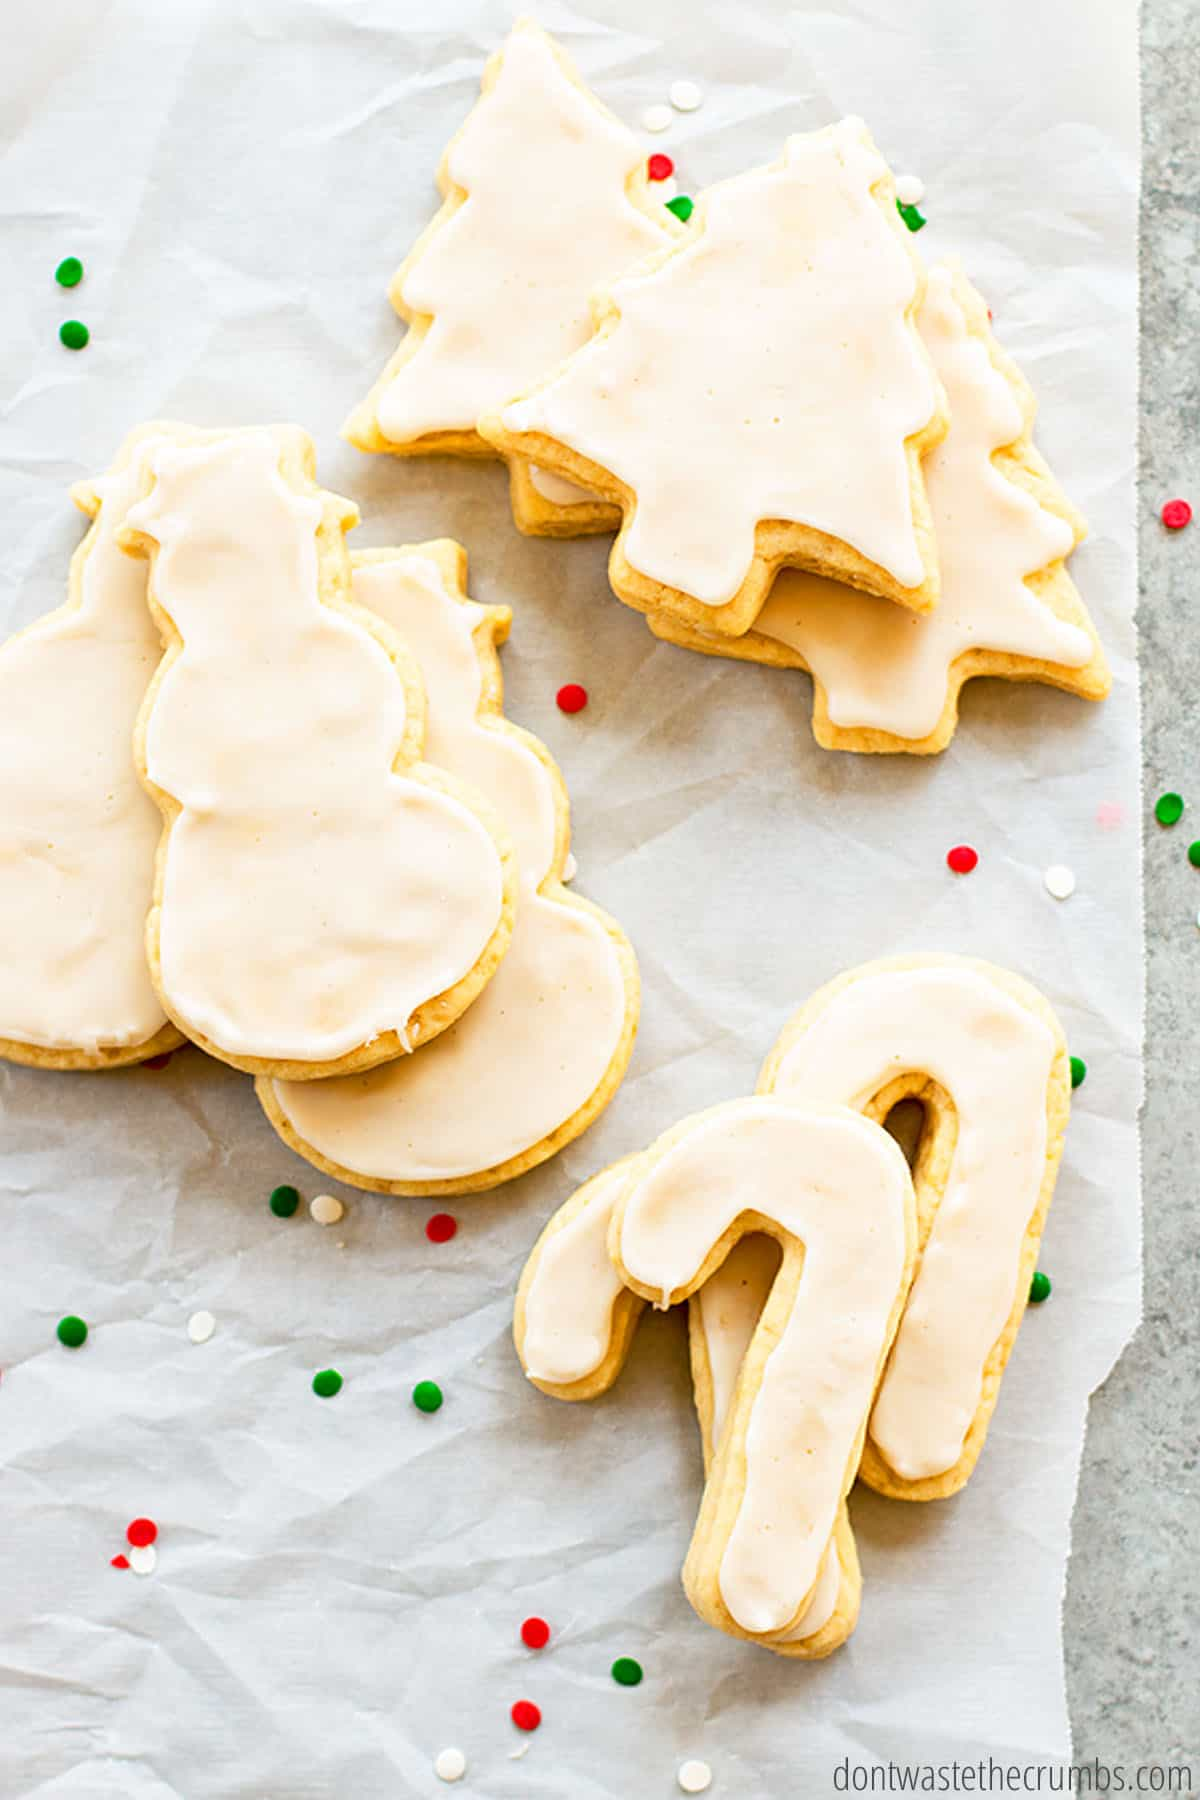 Nine Christmas cookies in the shapes of canes, snowmen and Christmas tree are fully iced and decorated - sitting on top of parchment paper on a granite countertop.